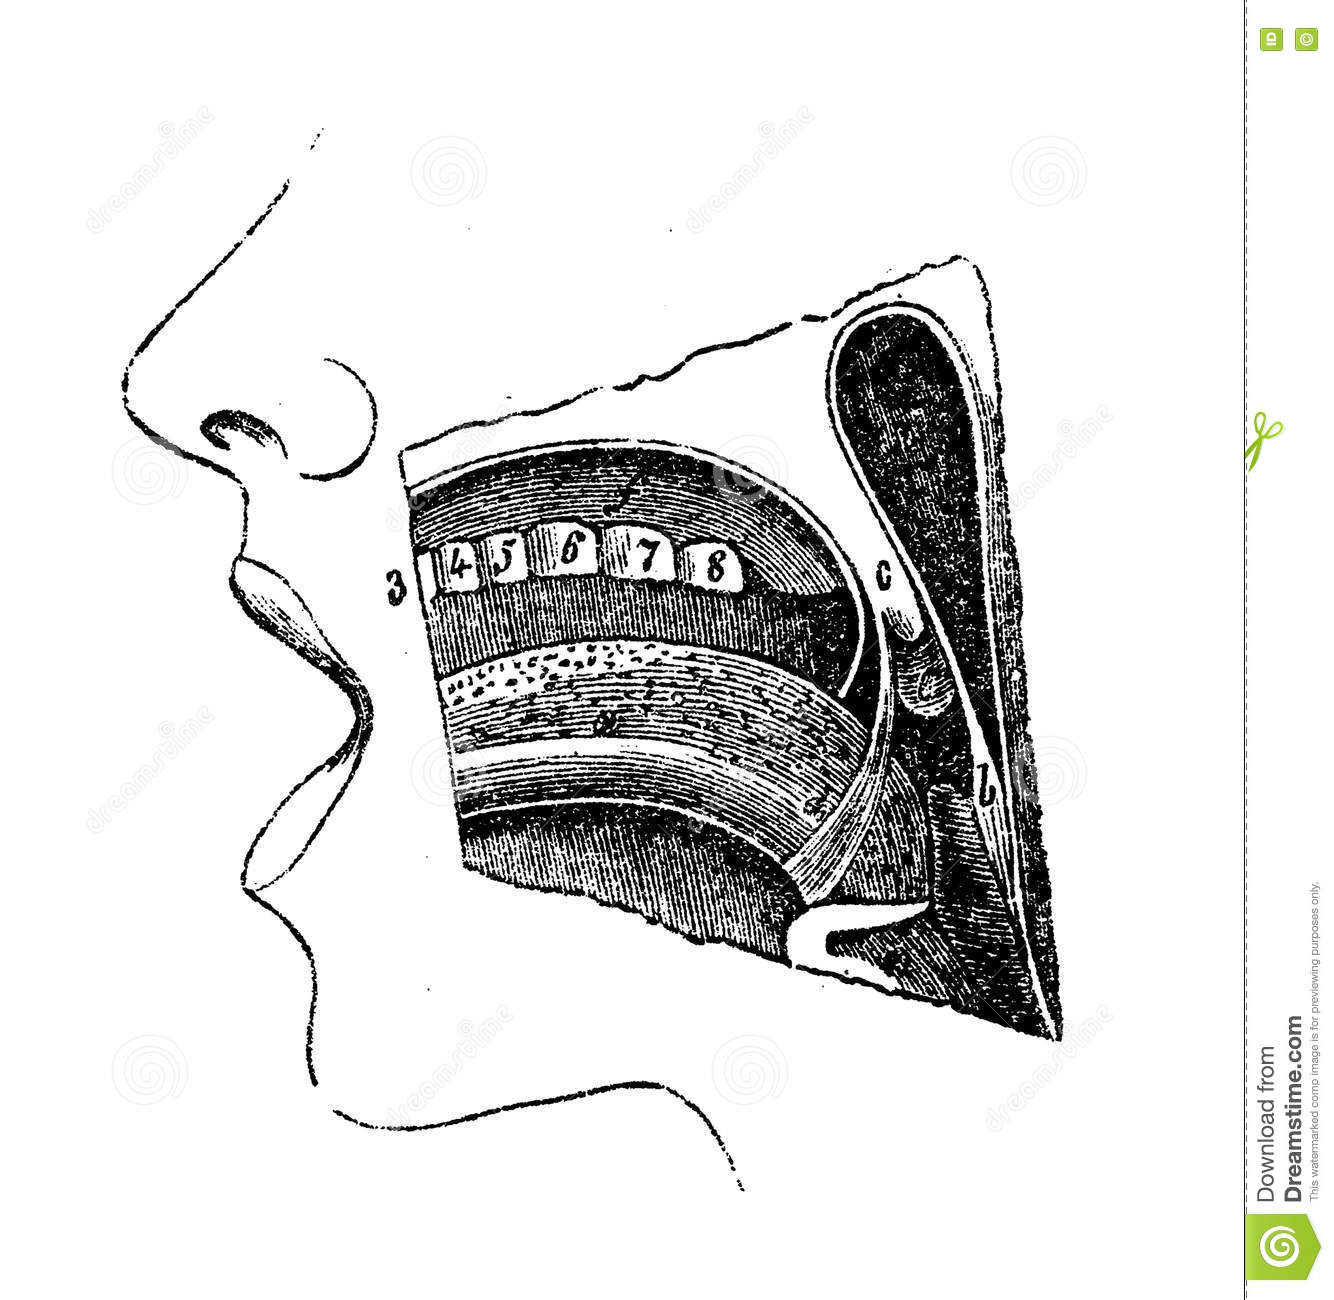 Anatomy Oral Cavity Vintage Engraving Stock Illustration